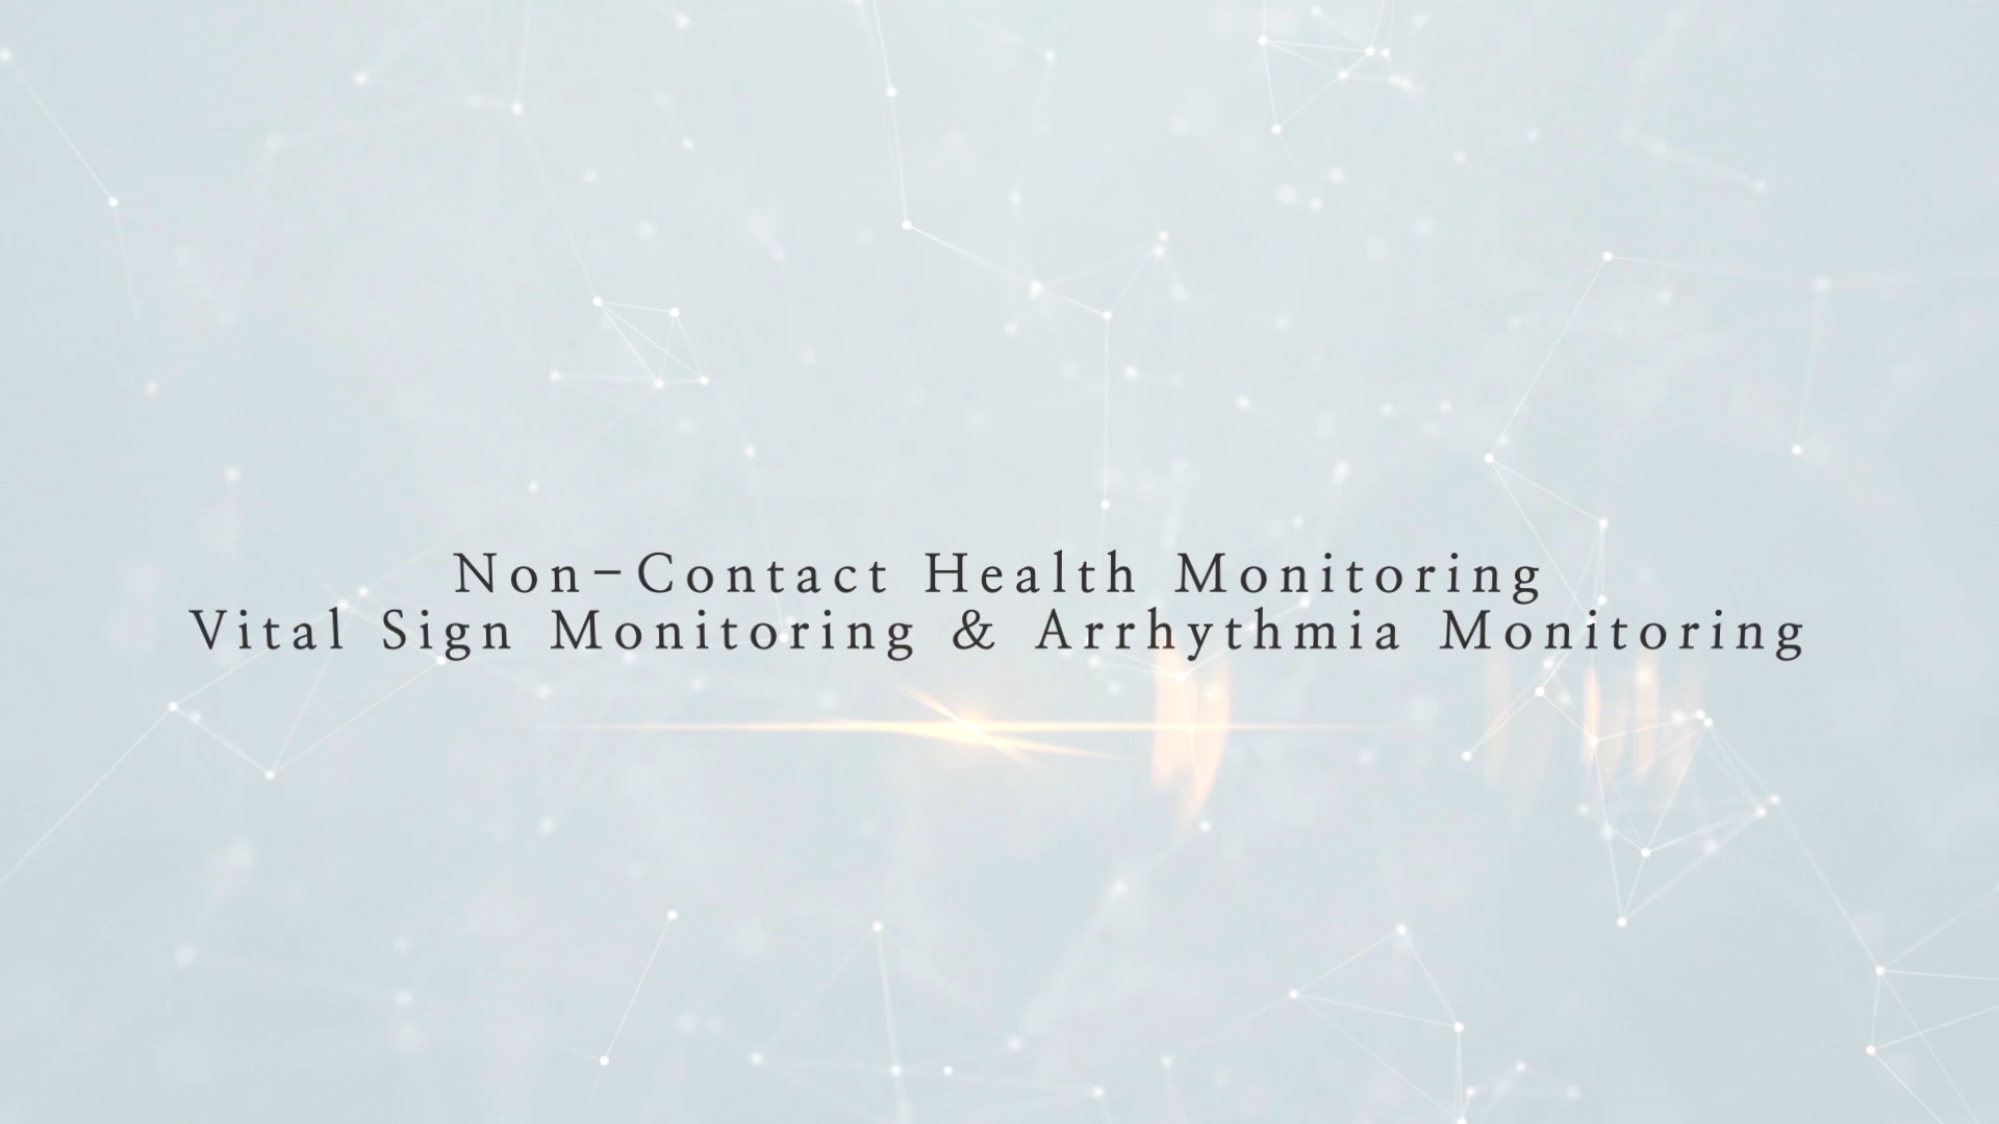 [테크블랙홀] Vital Sign Monitoring & Arrhythmia Monitoring